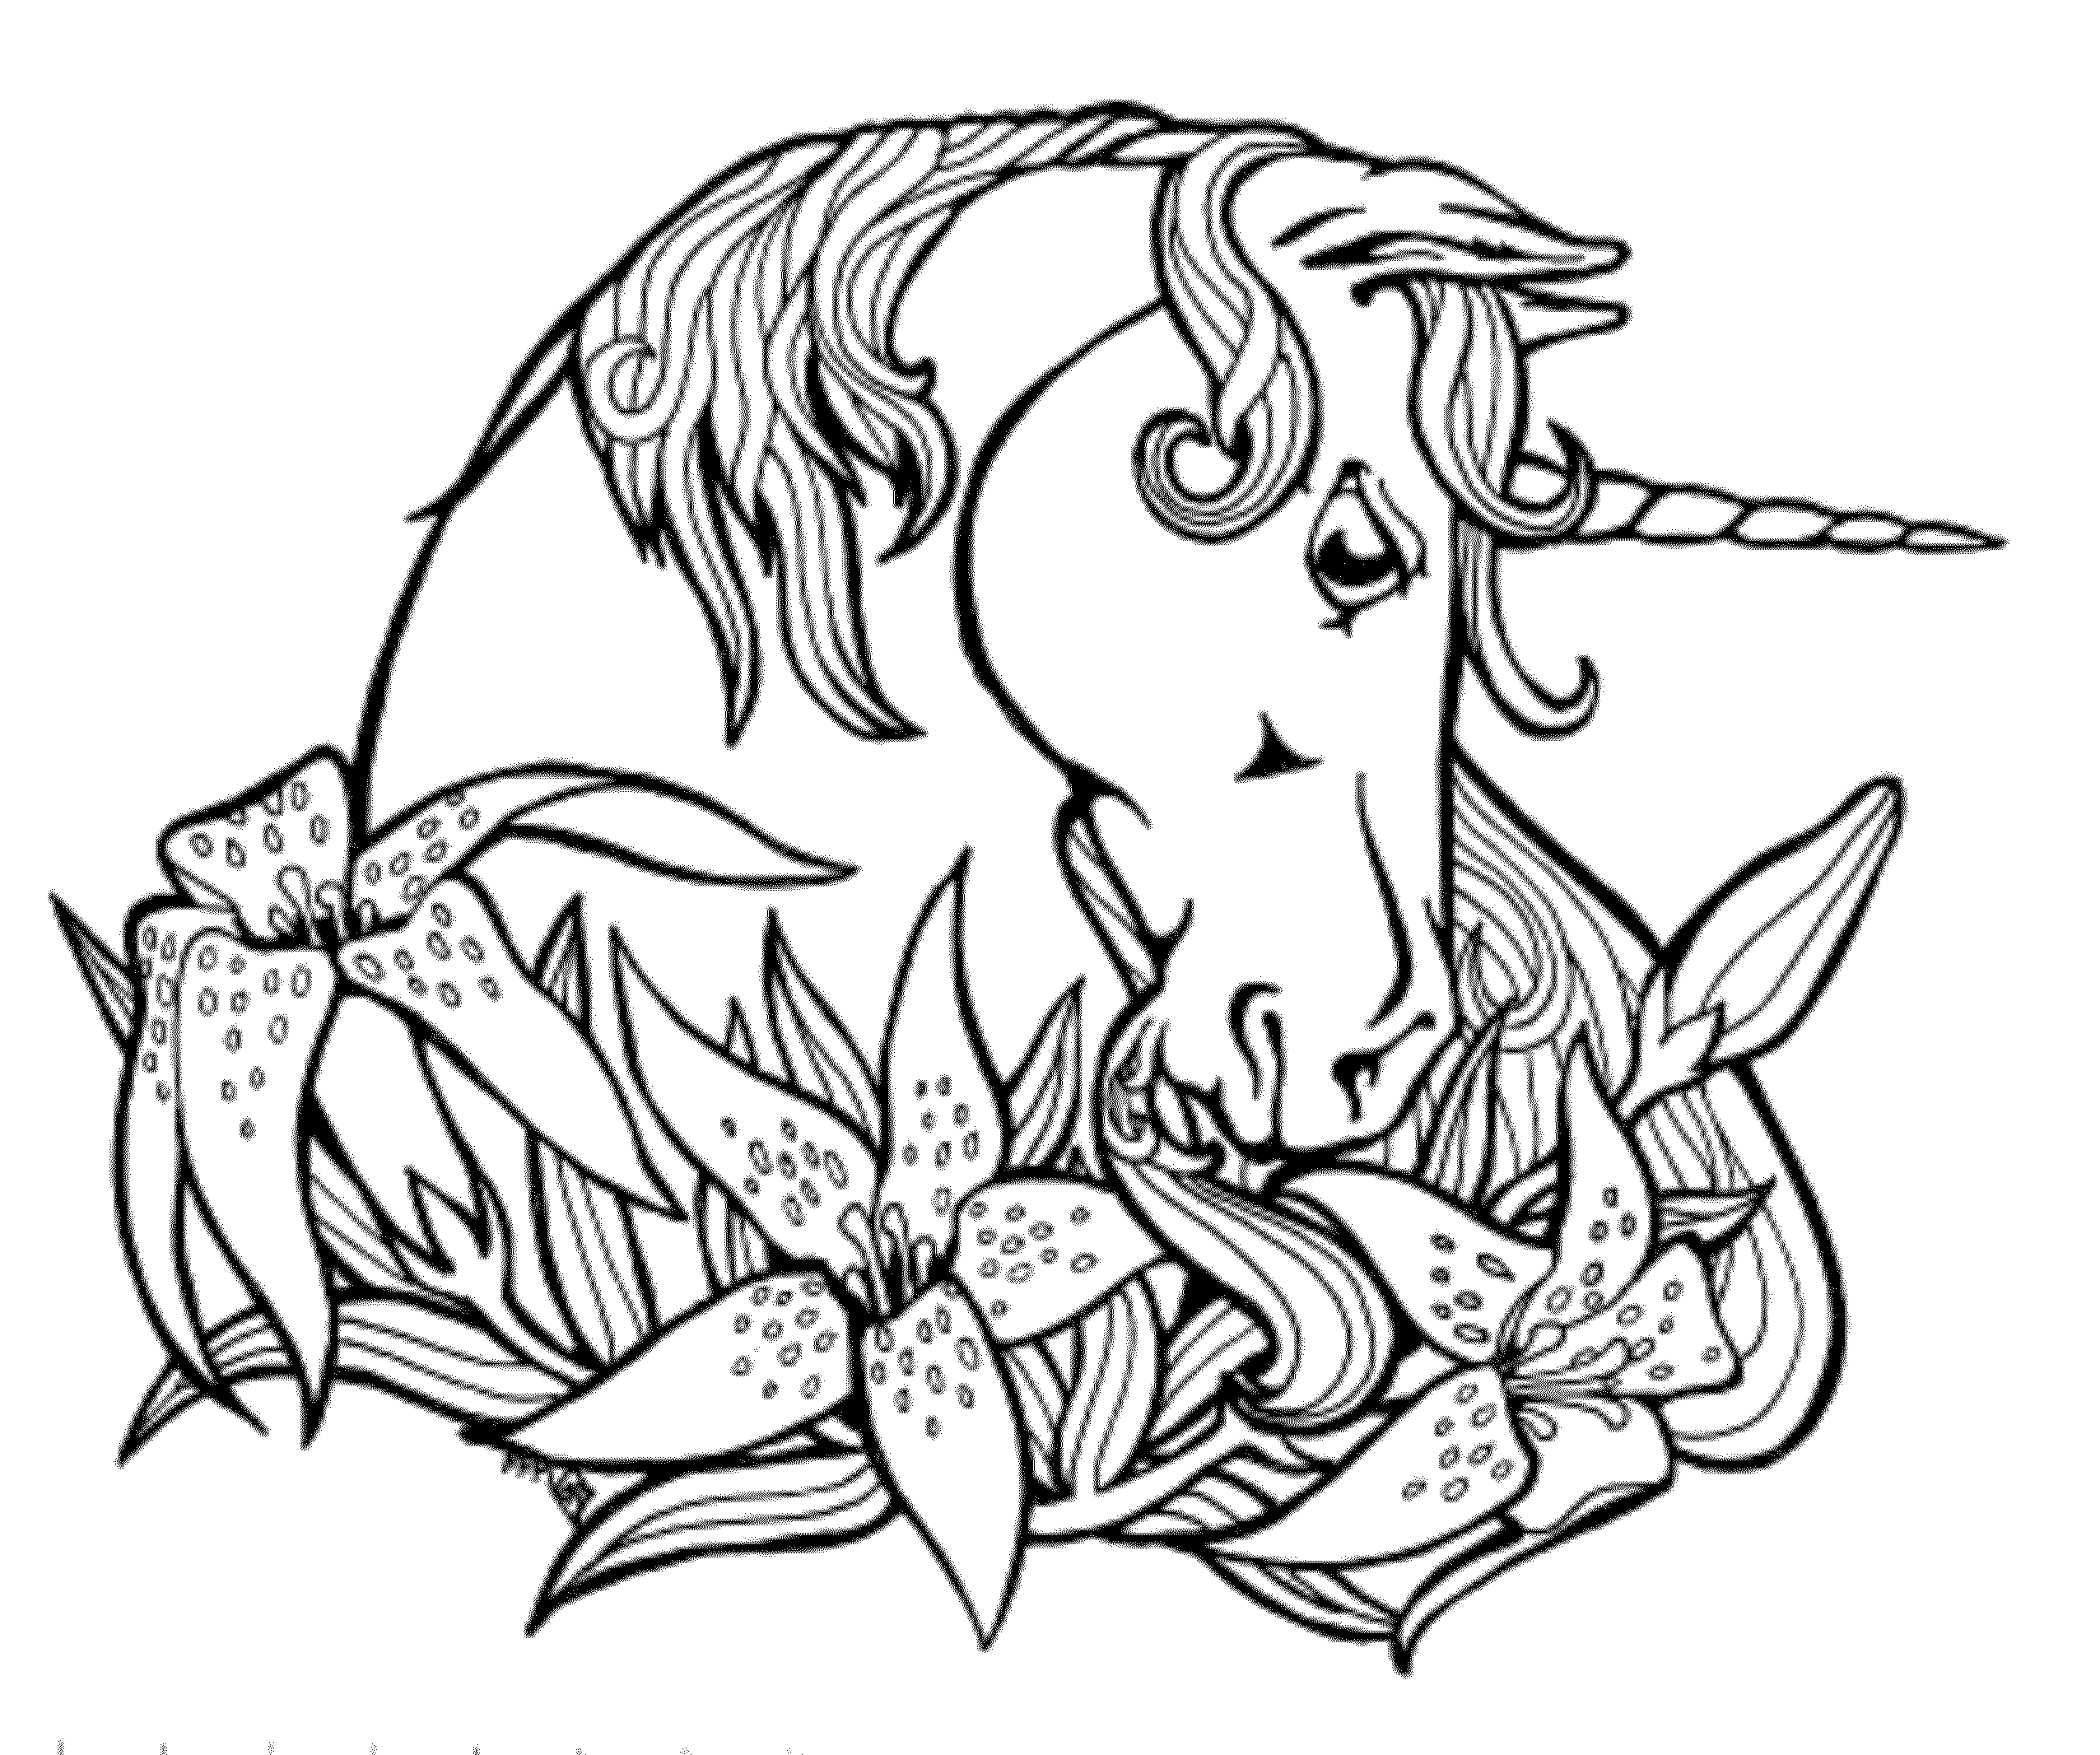 a unicorn coloring sheet unicorn coloring pages to download and print for free unicorn sheet coloring a